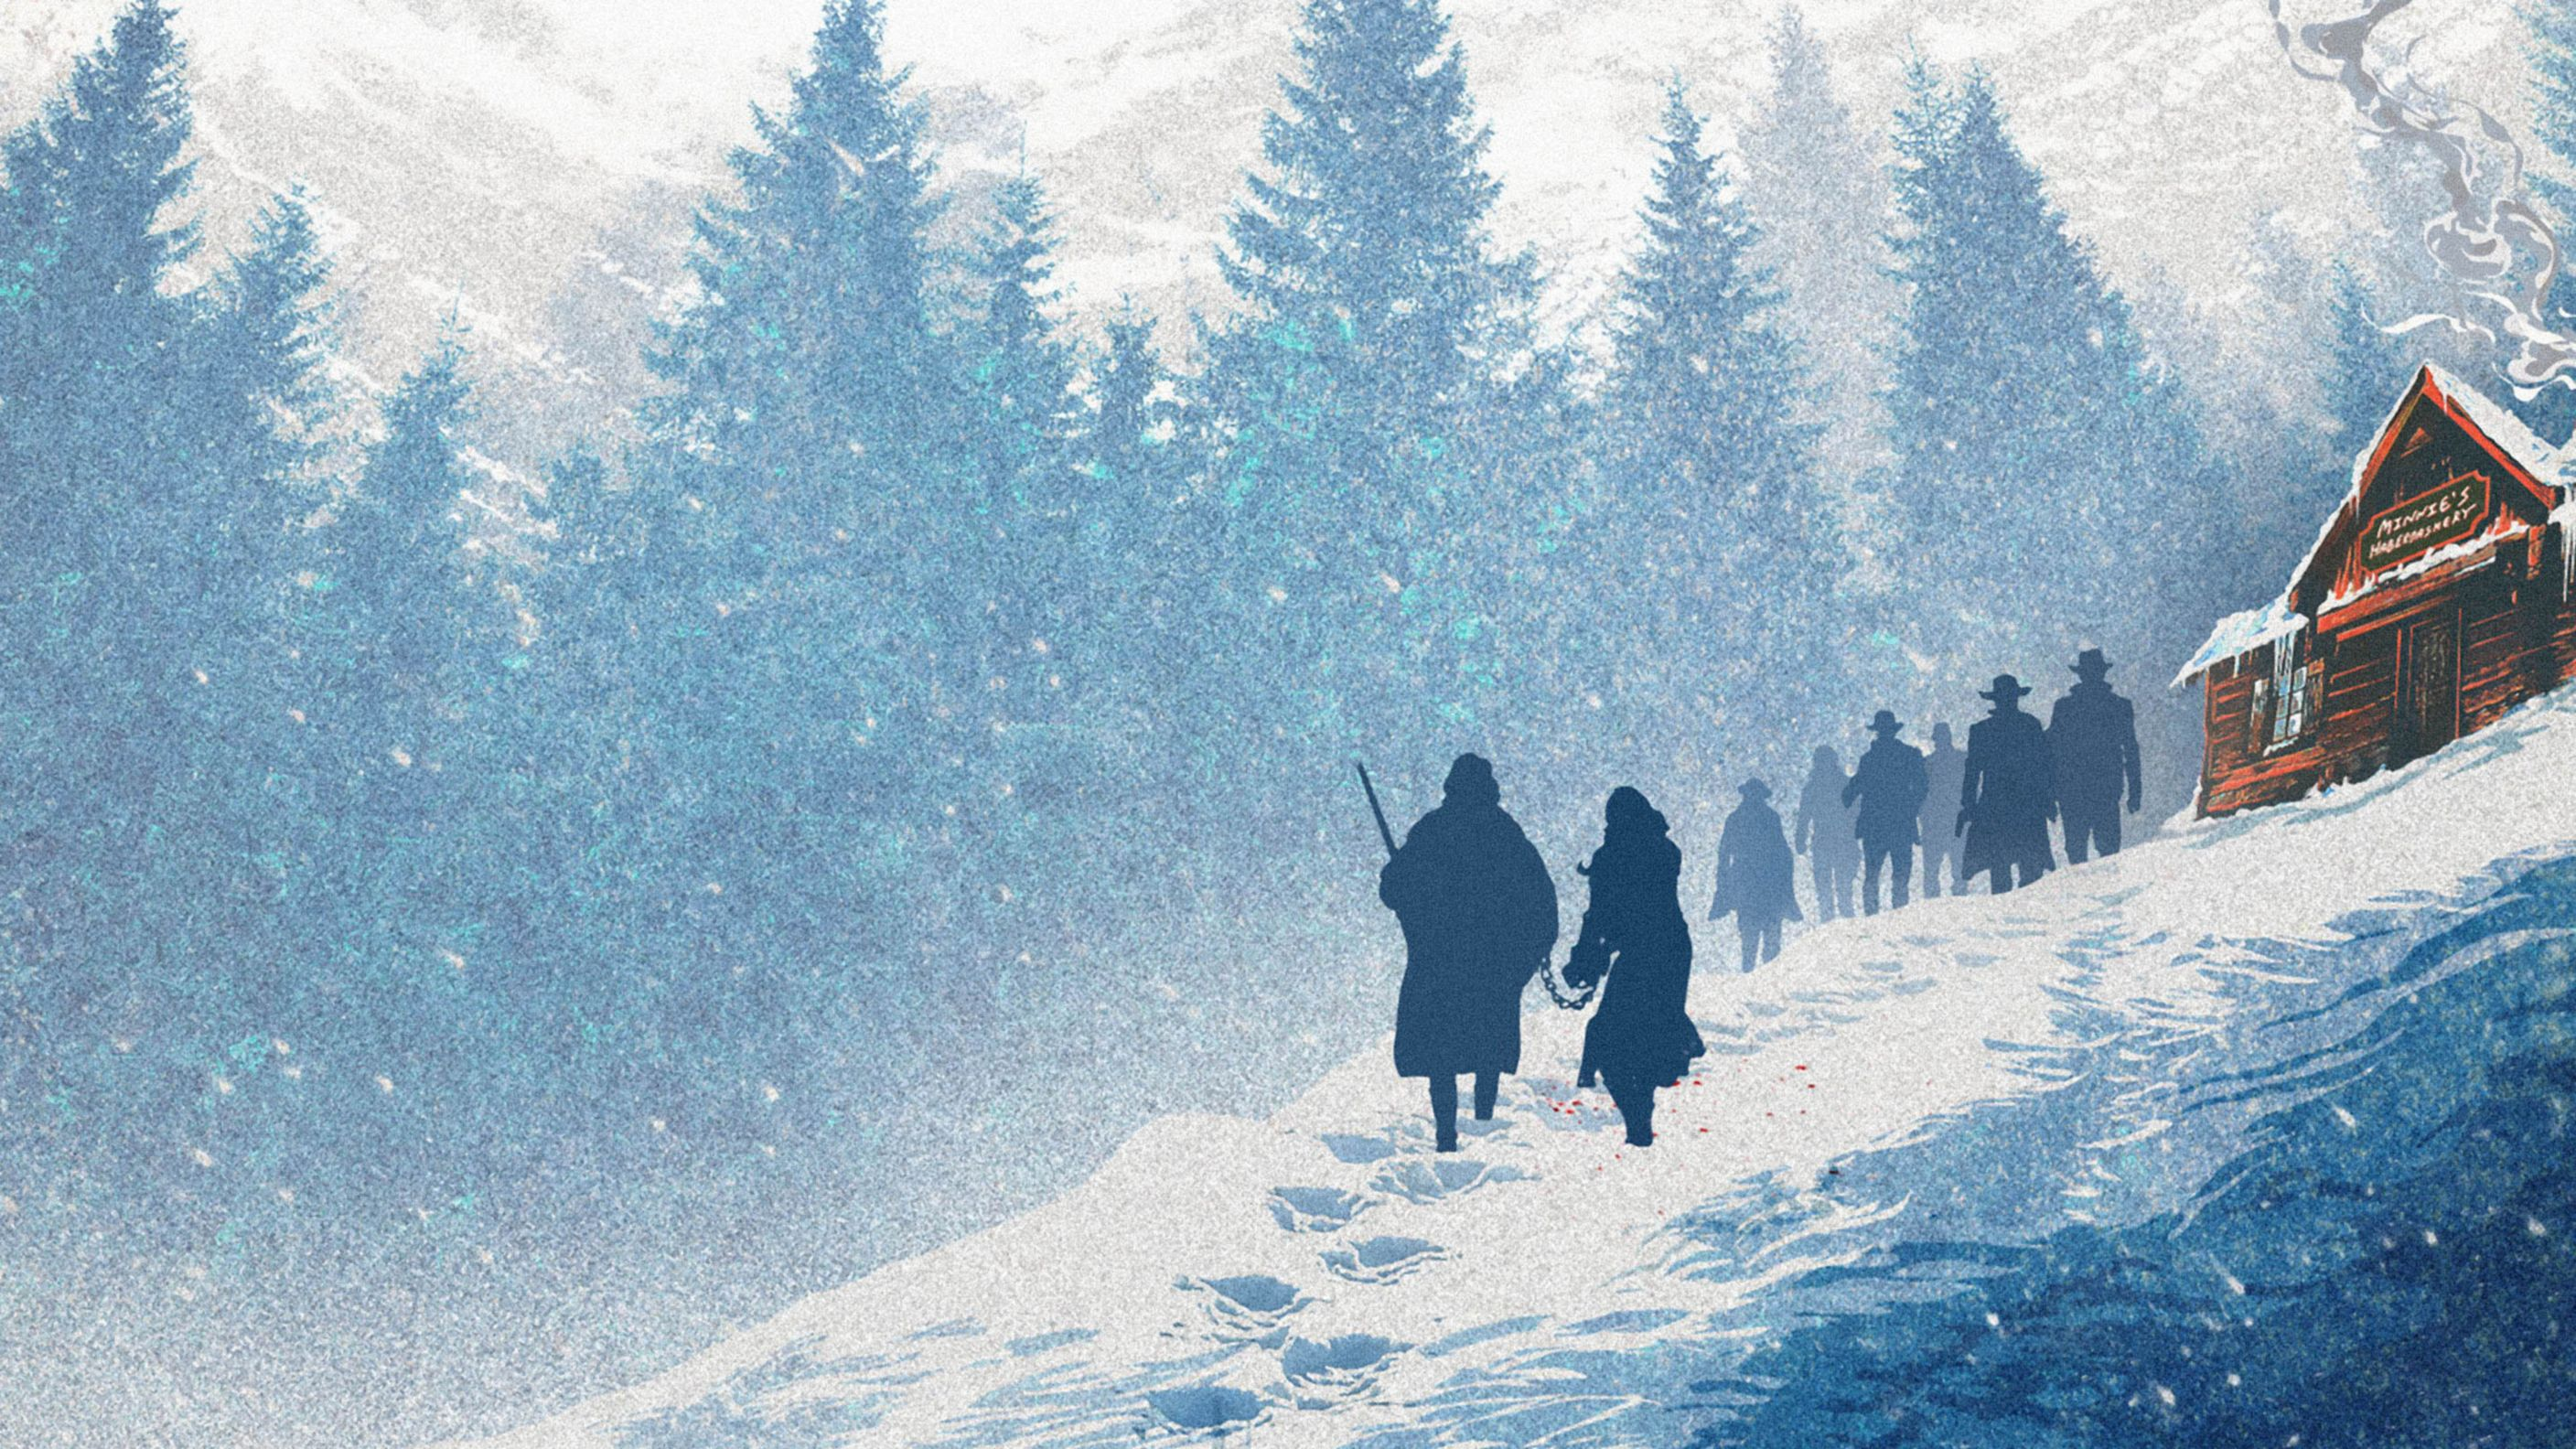 Download free HD The Hateful Eight HD Wallpaper, image